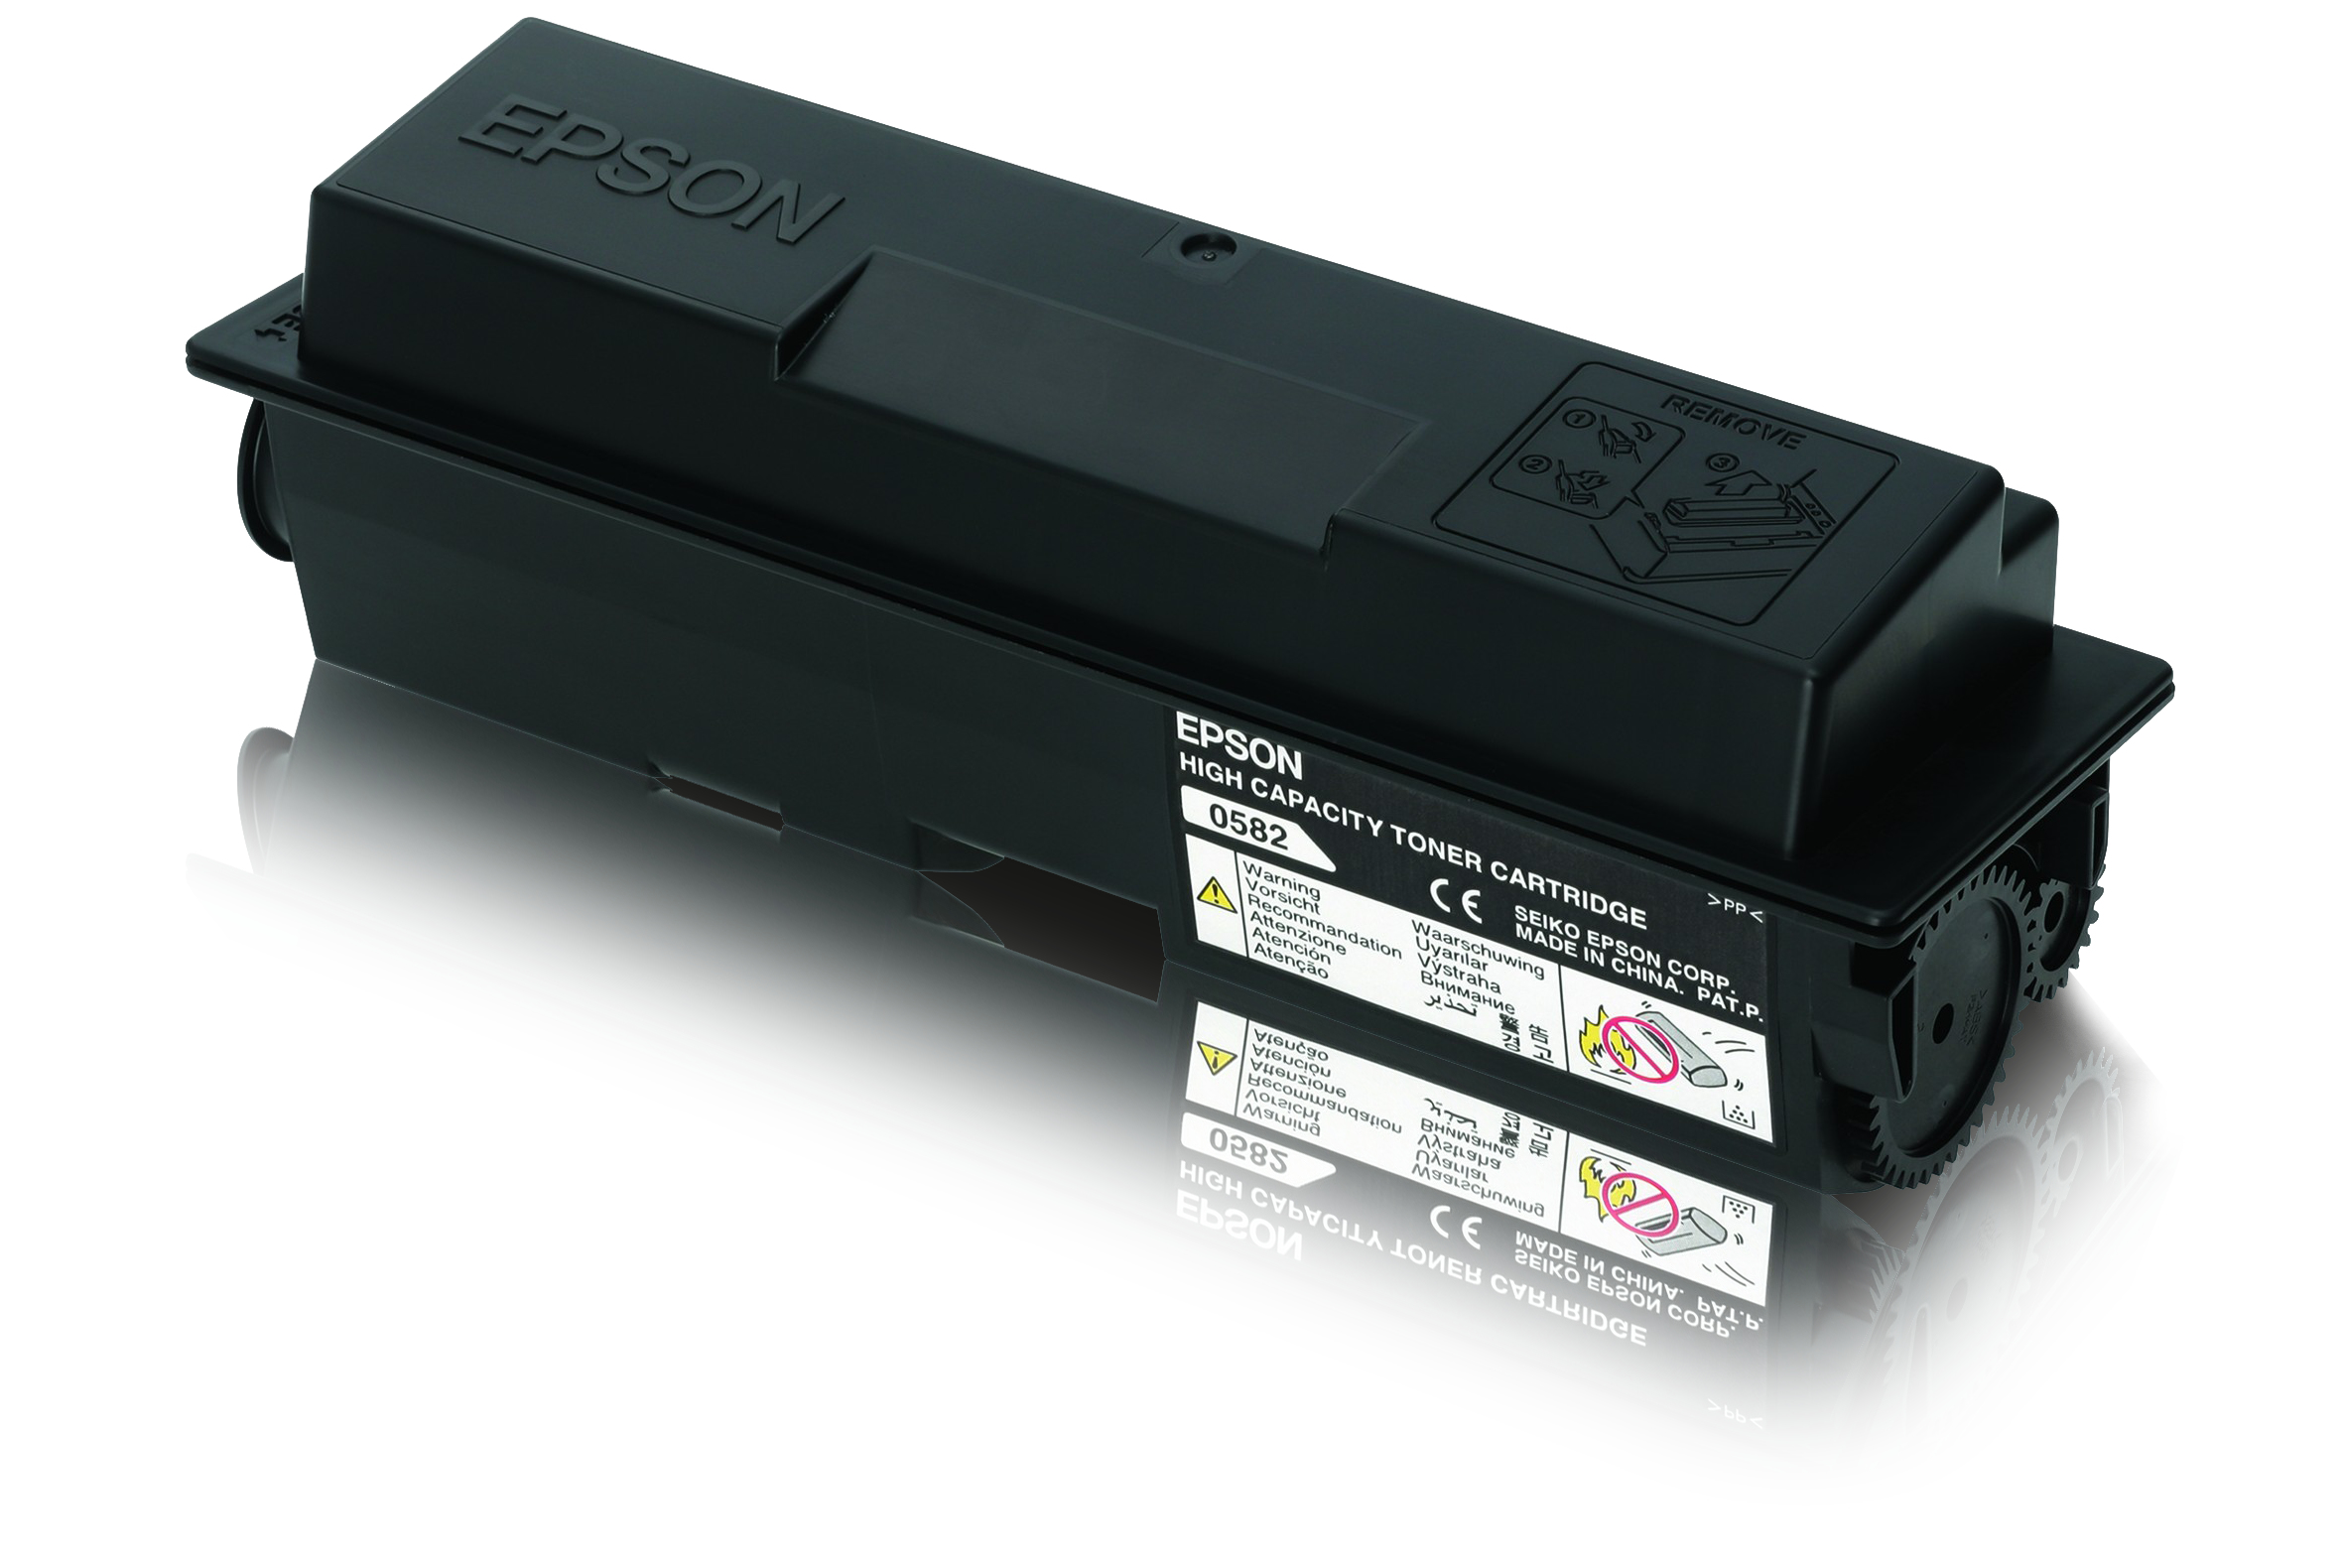 Remanufactured Epson C13S050584 Black Toner C13S050584 - rem01